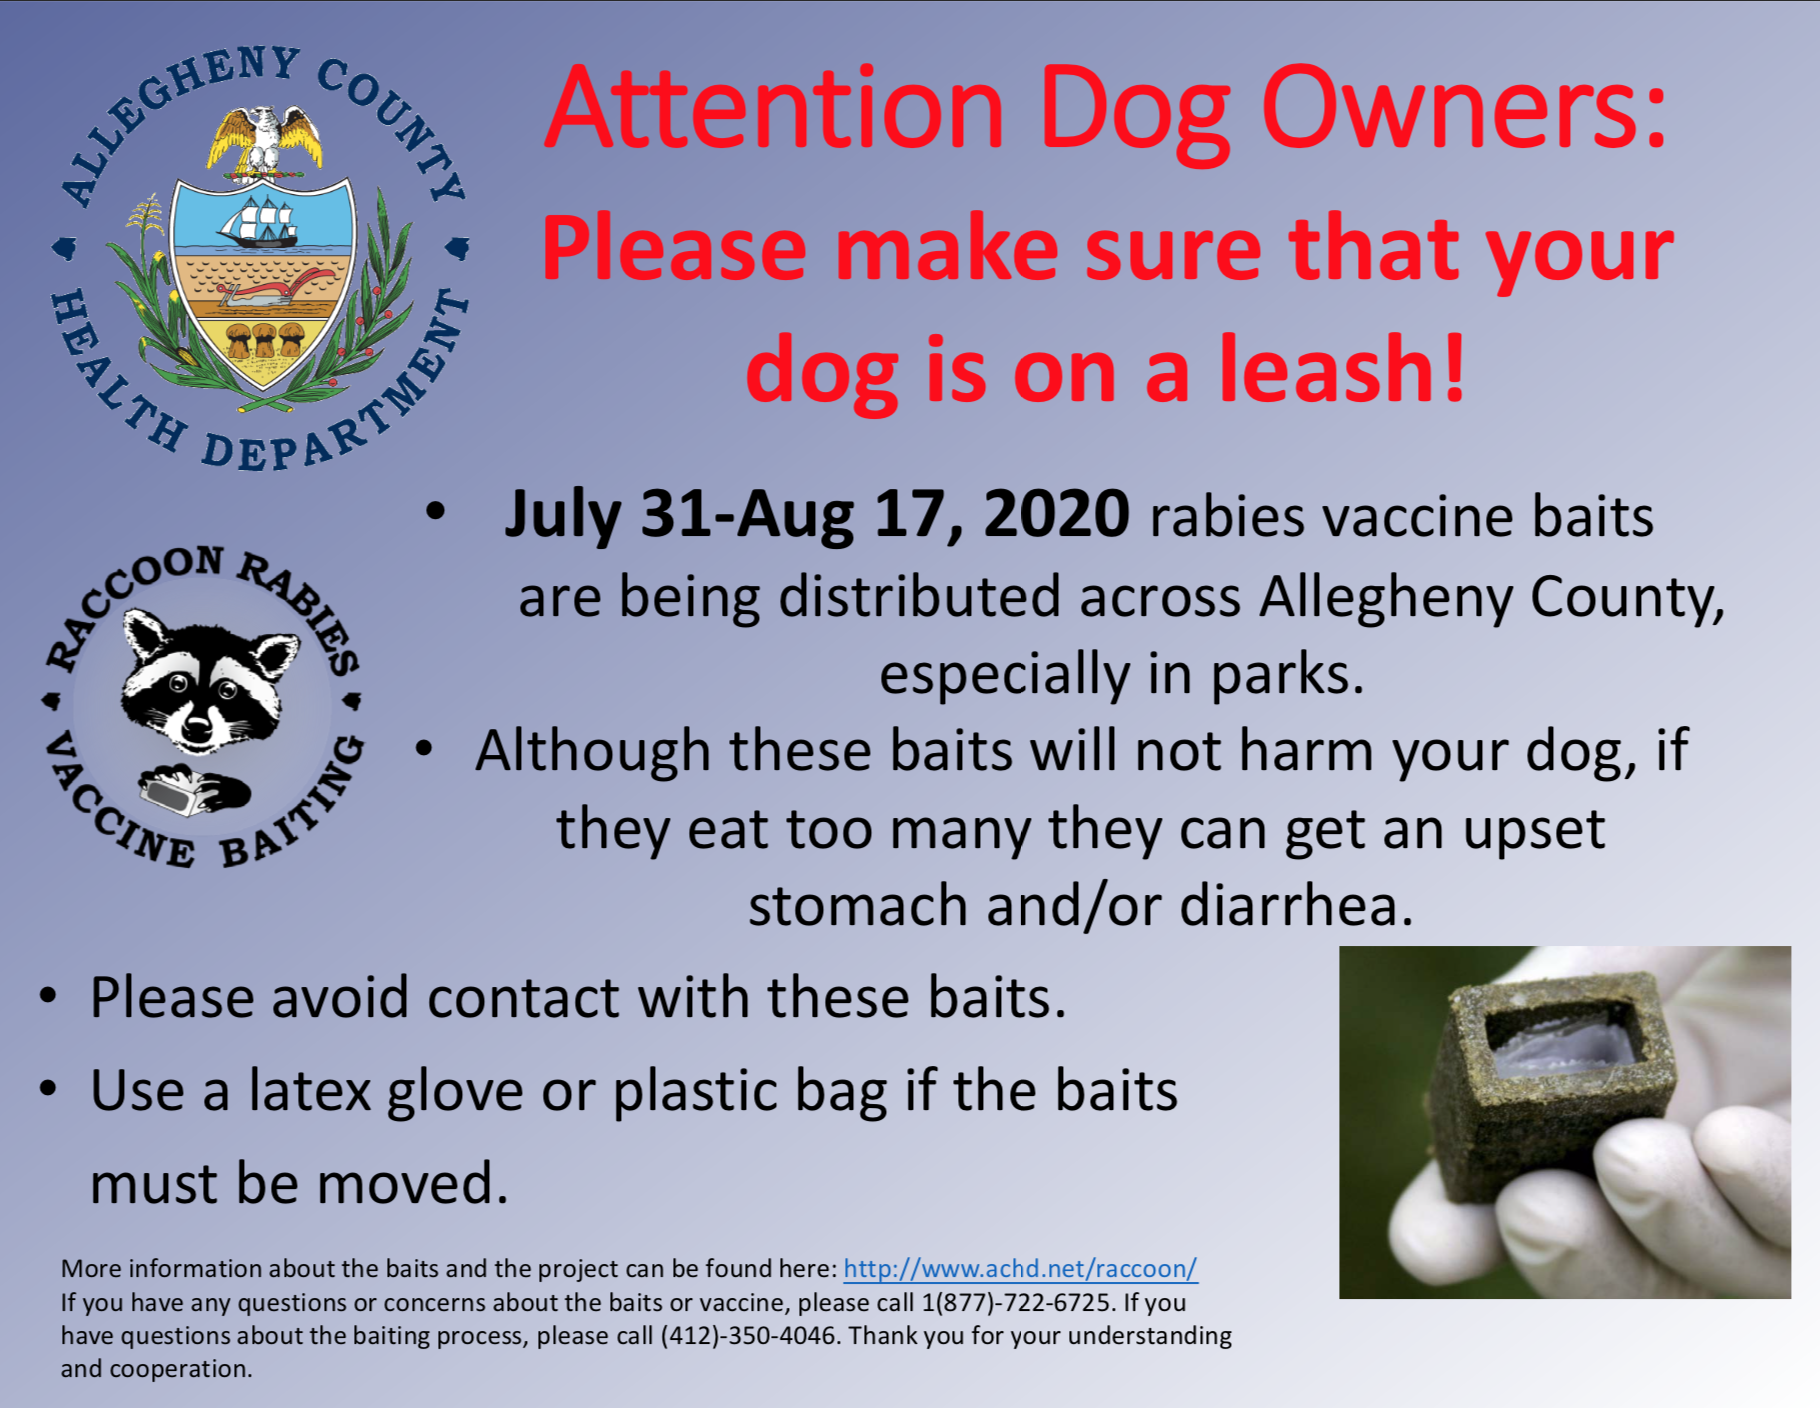 Protect your dogs!